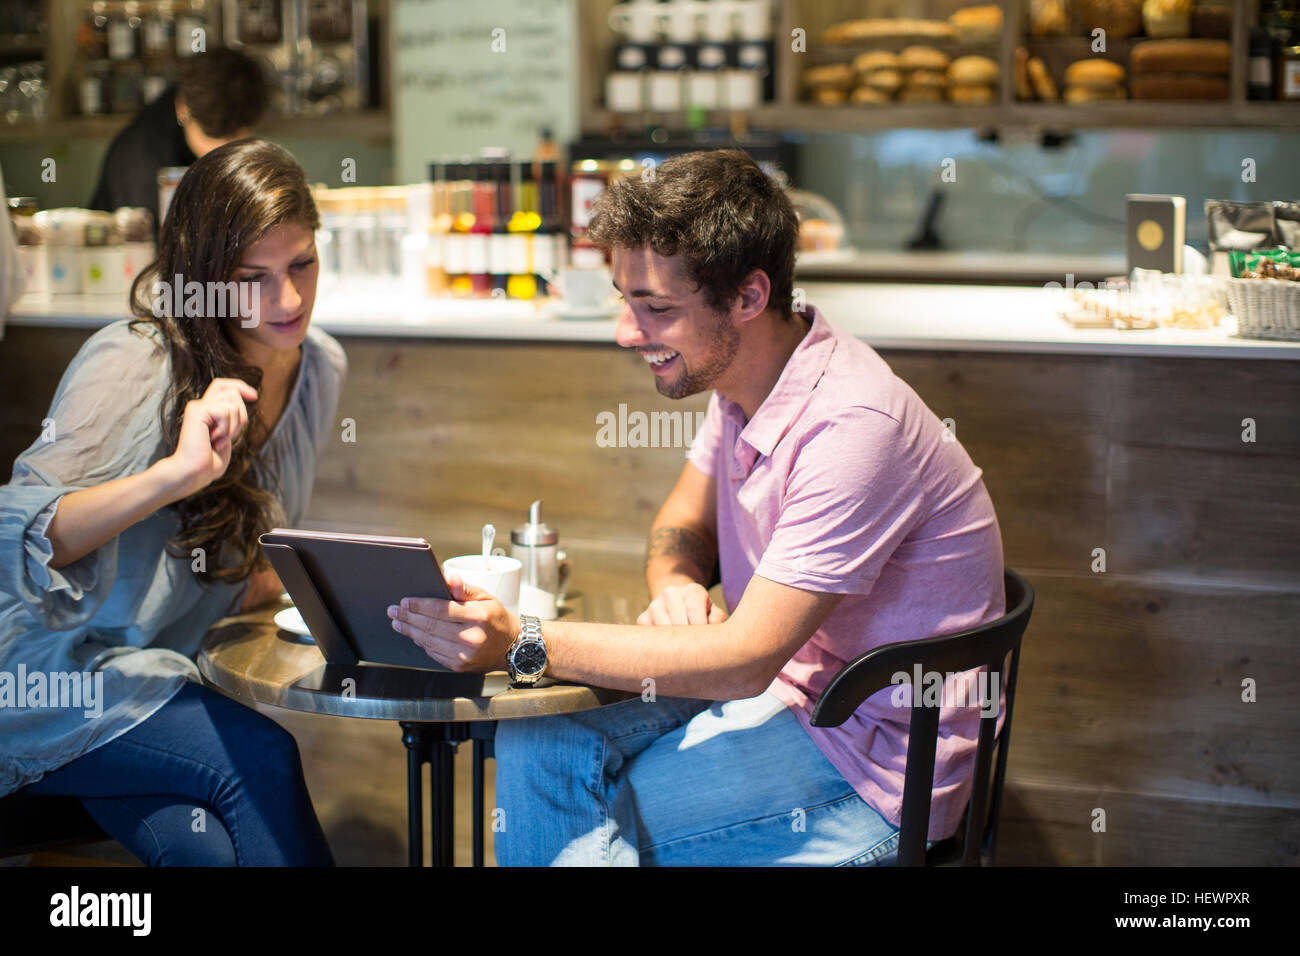 Young couple in cafe looking at digital tablet Photo Stock